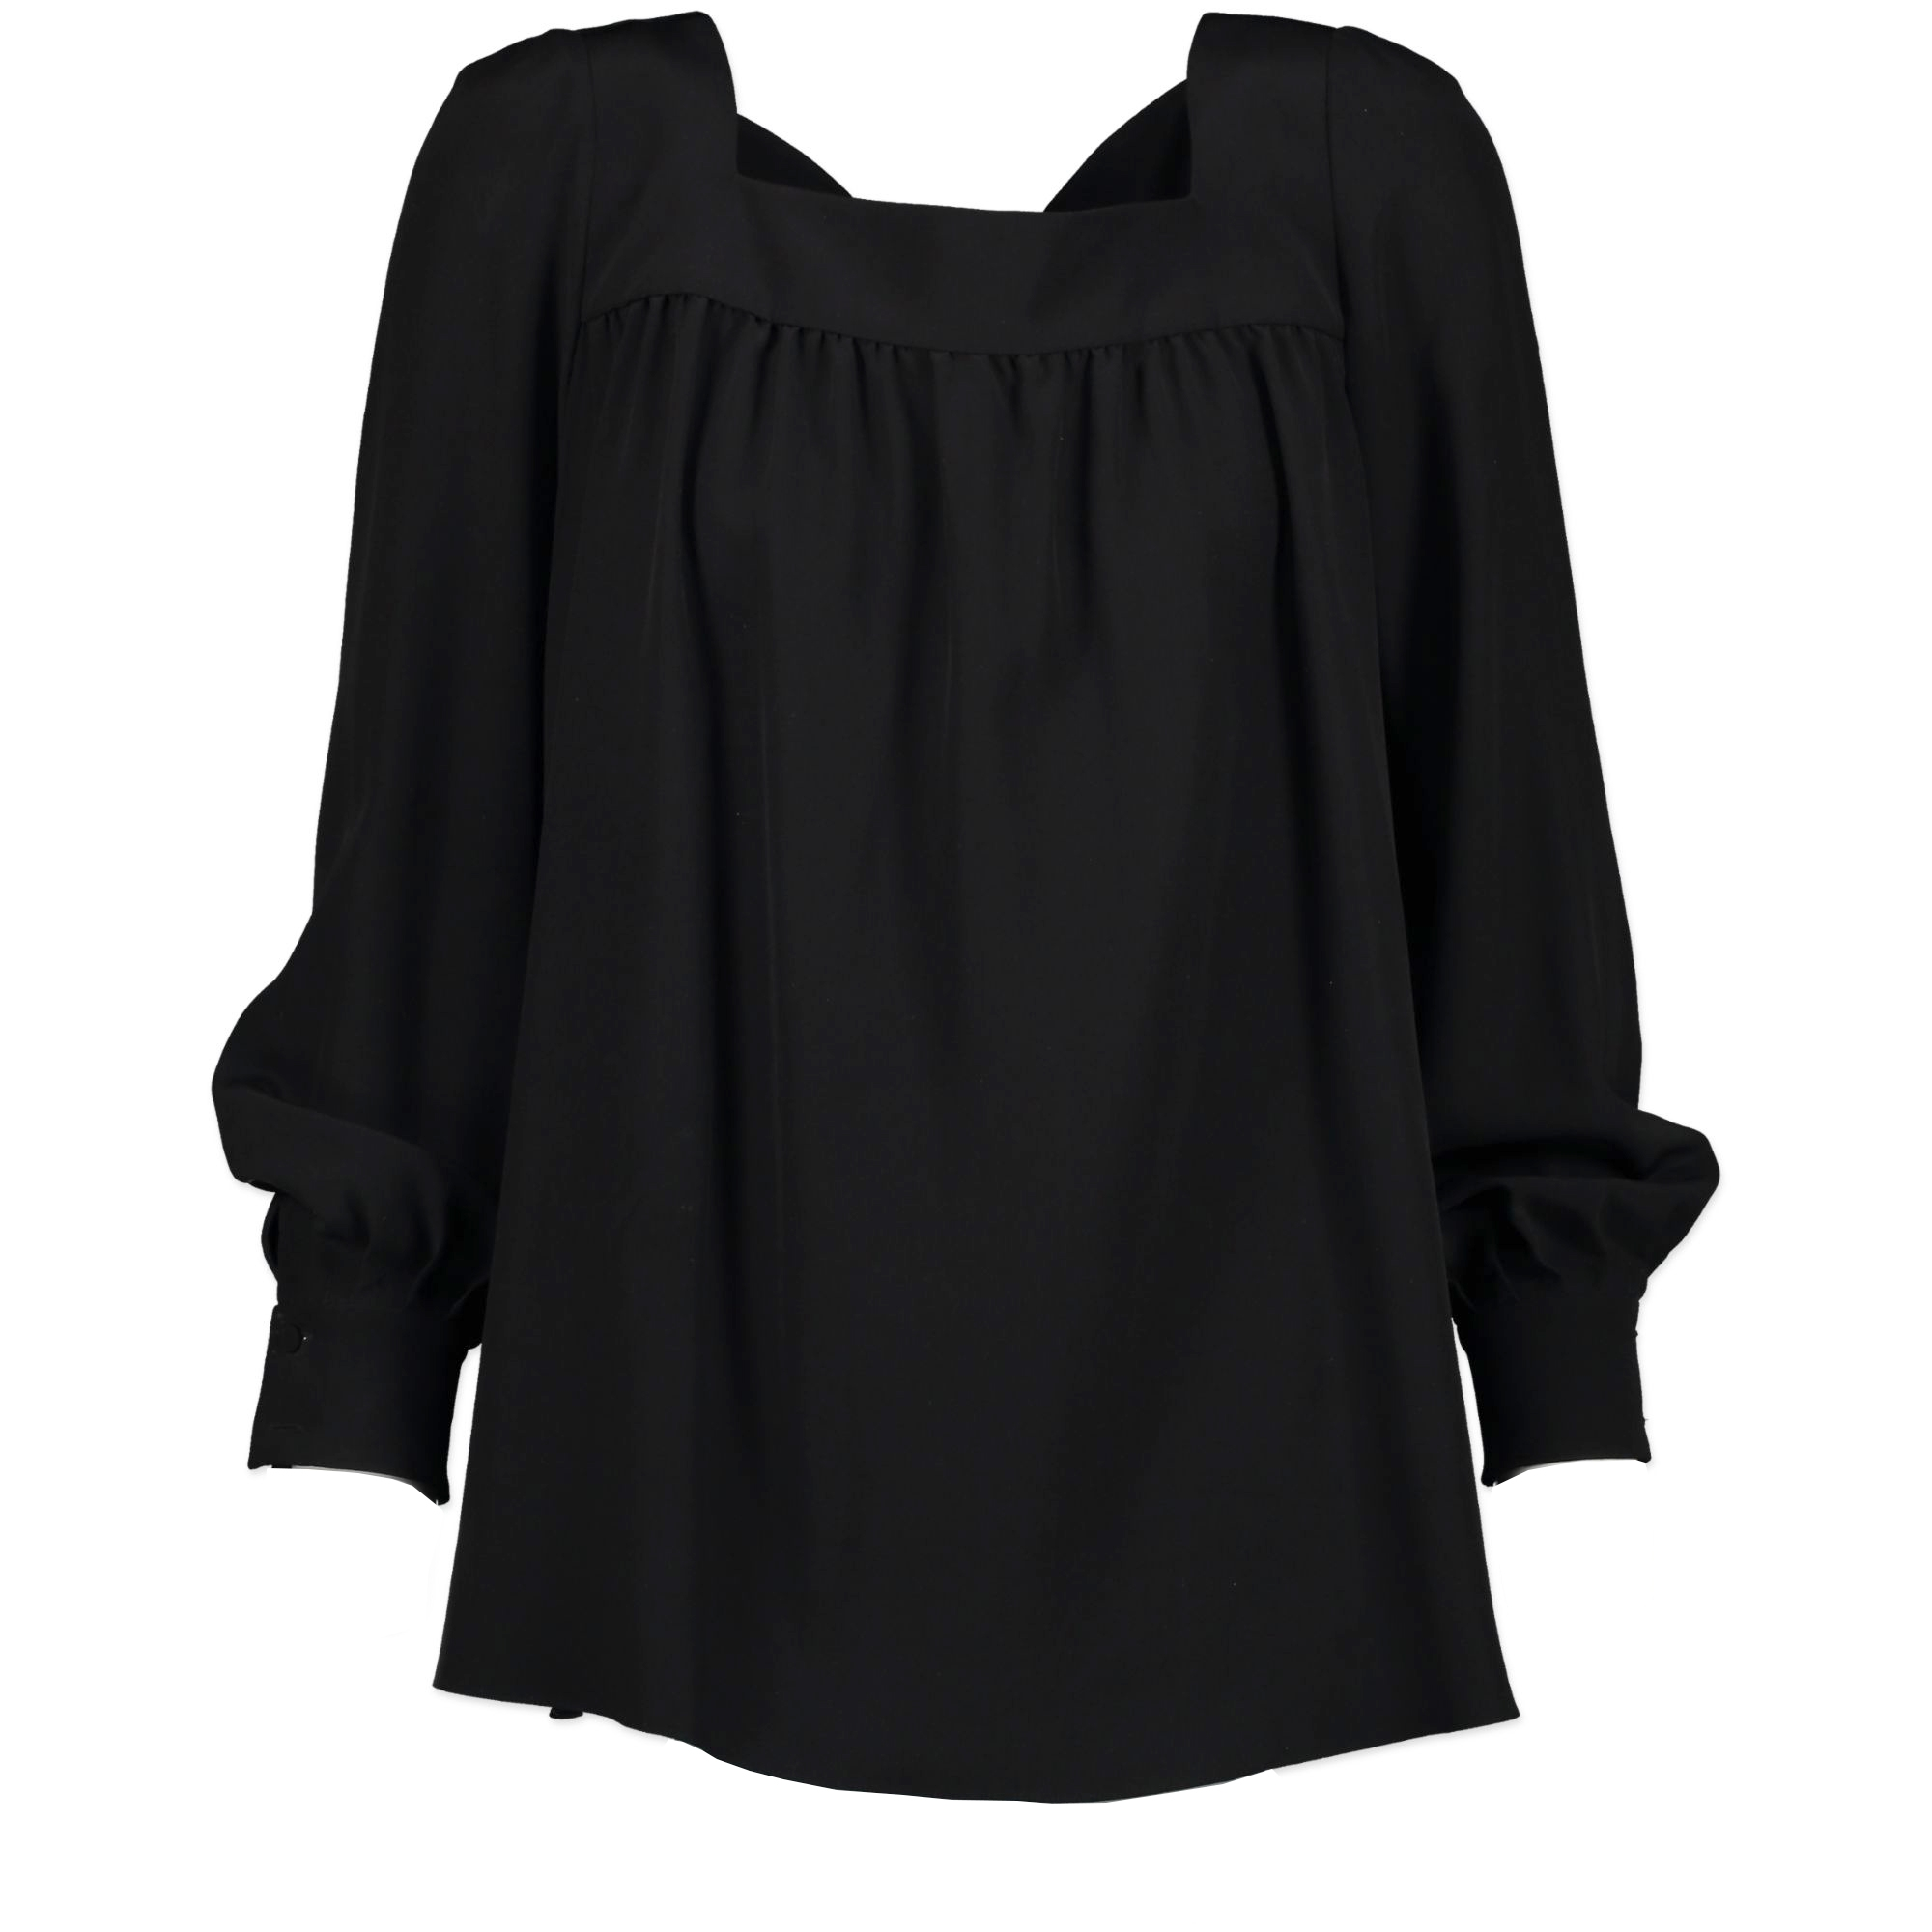 Saint Laurent Black Silk Blouse - Size 34